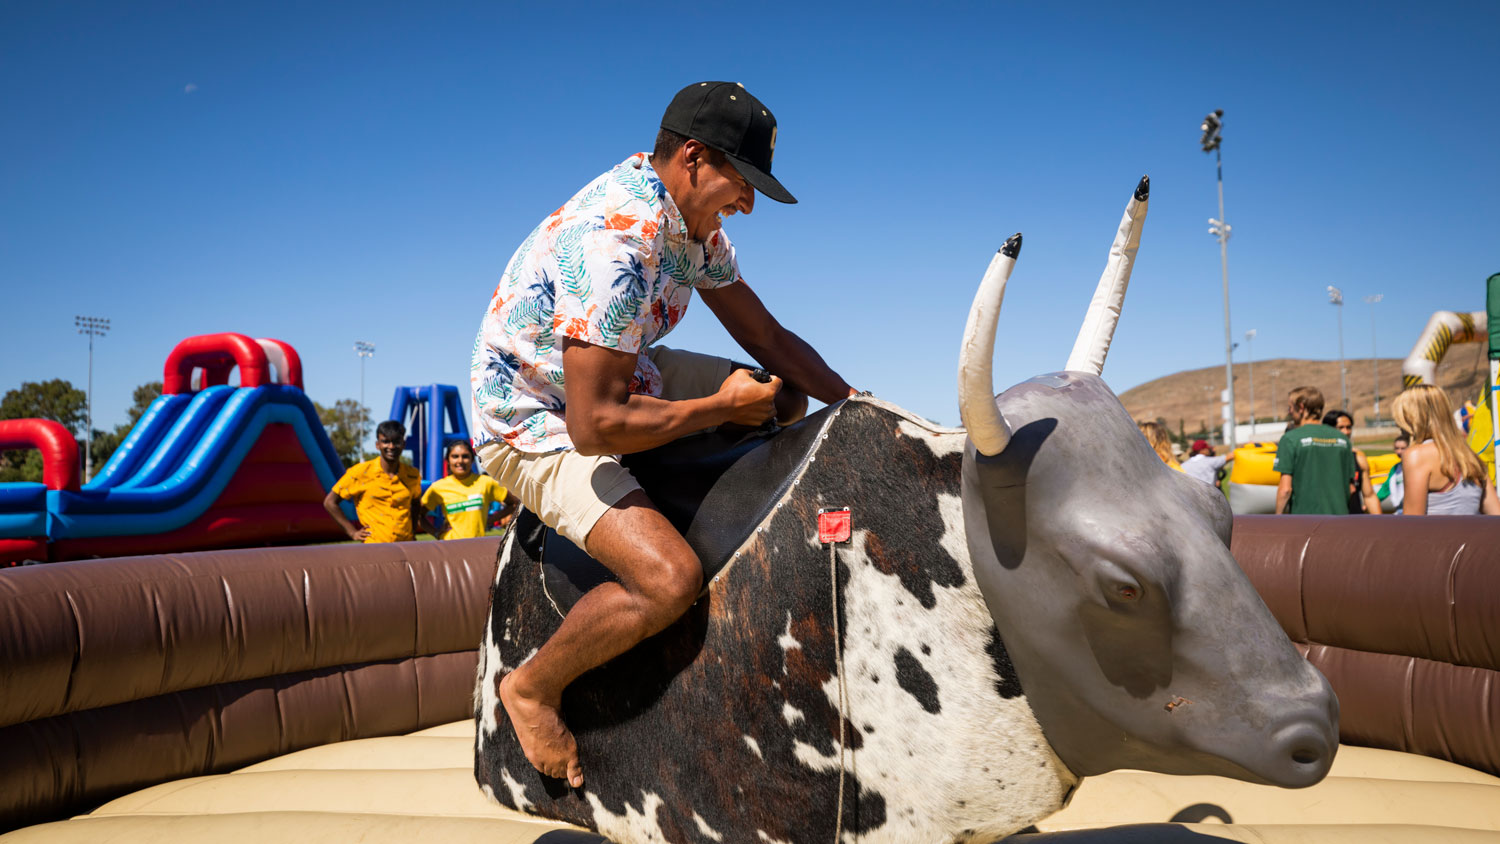 A student in a black hat rides a mechanical bull at Week of Welcome's Inflate-a-Fest